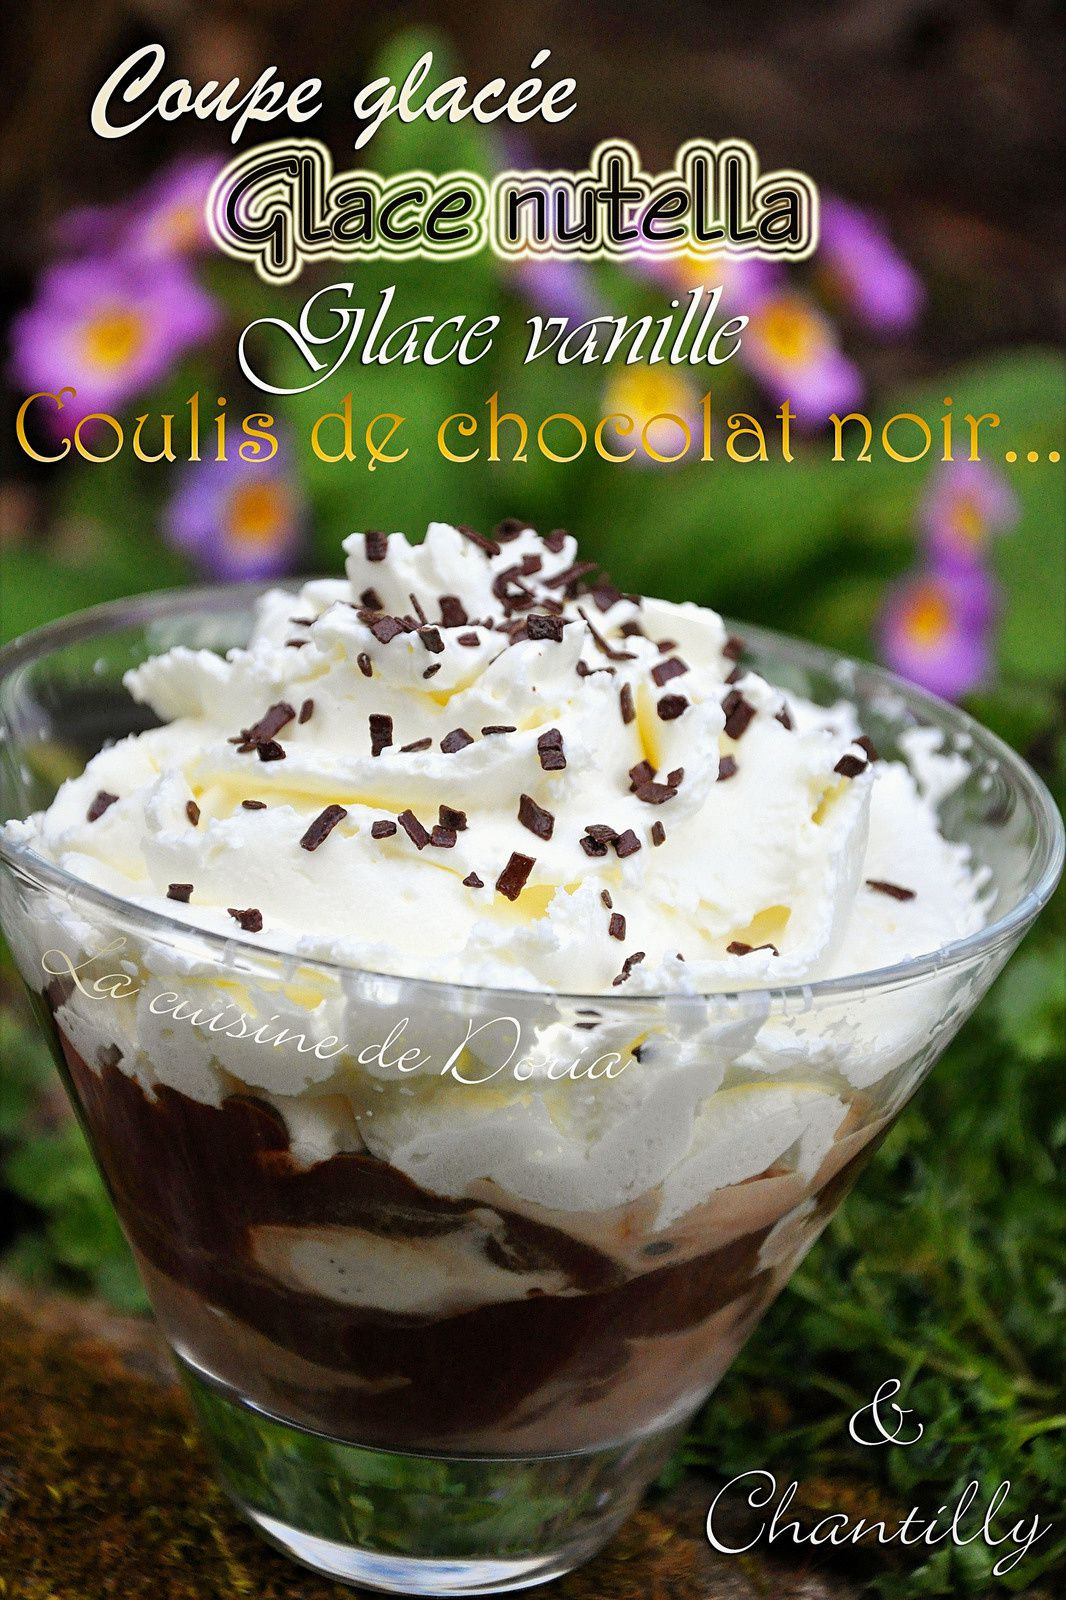 Coupe glacée à la chantilly